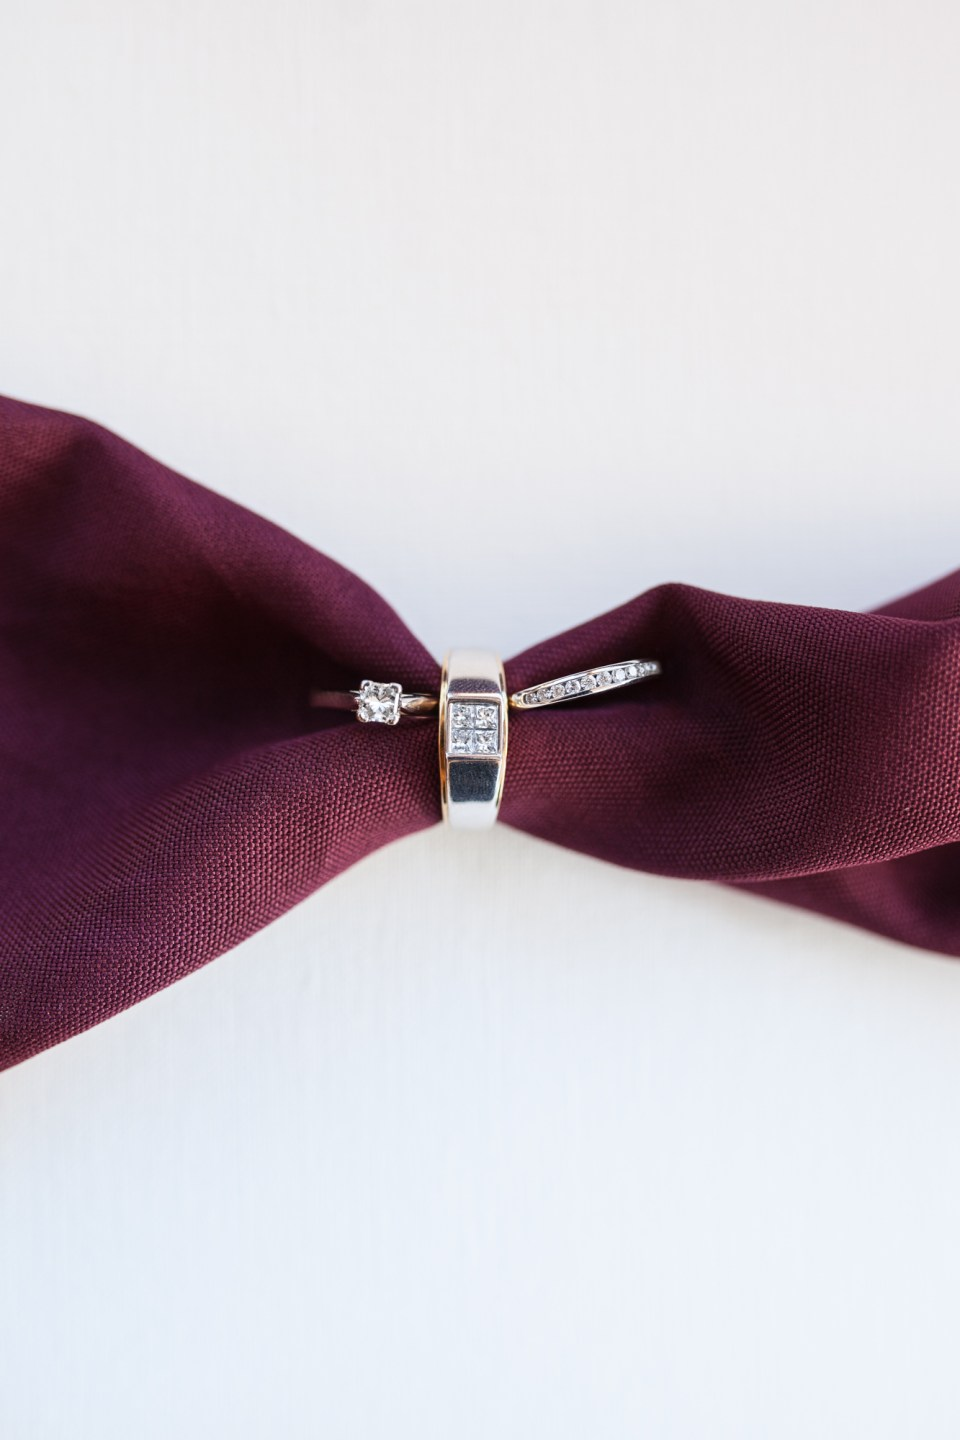 diamond engagement ring and wedding rings ring shot with merlot